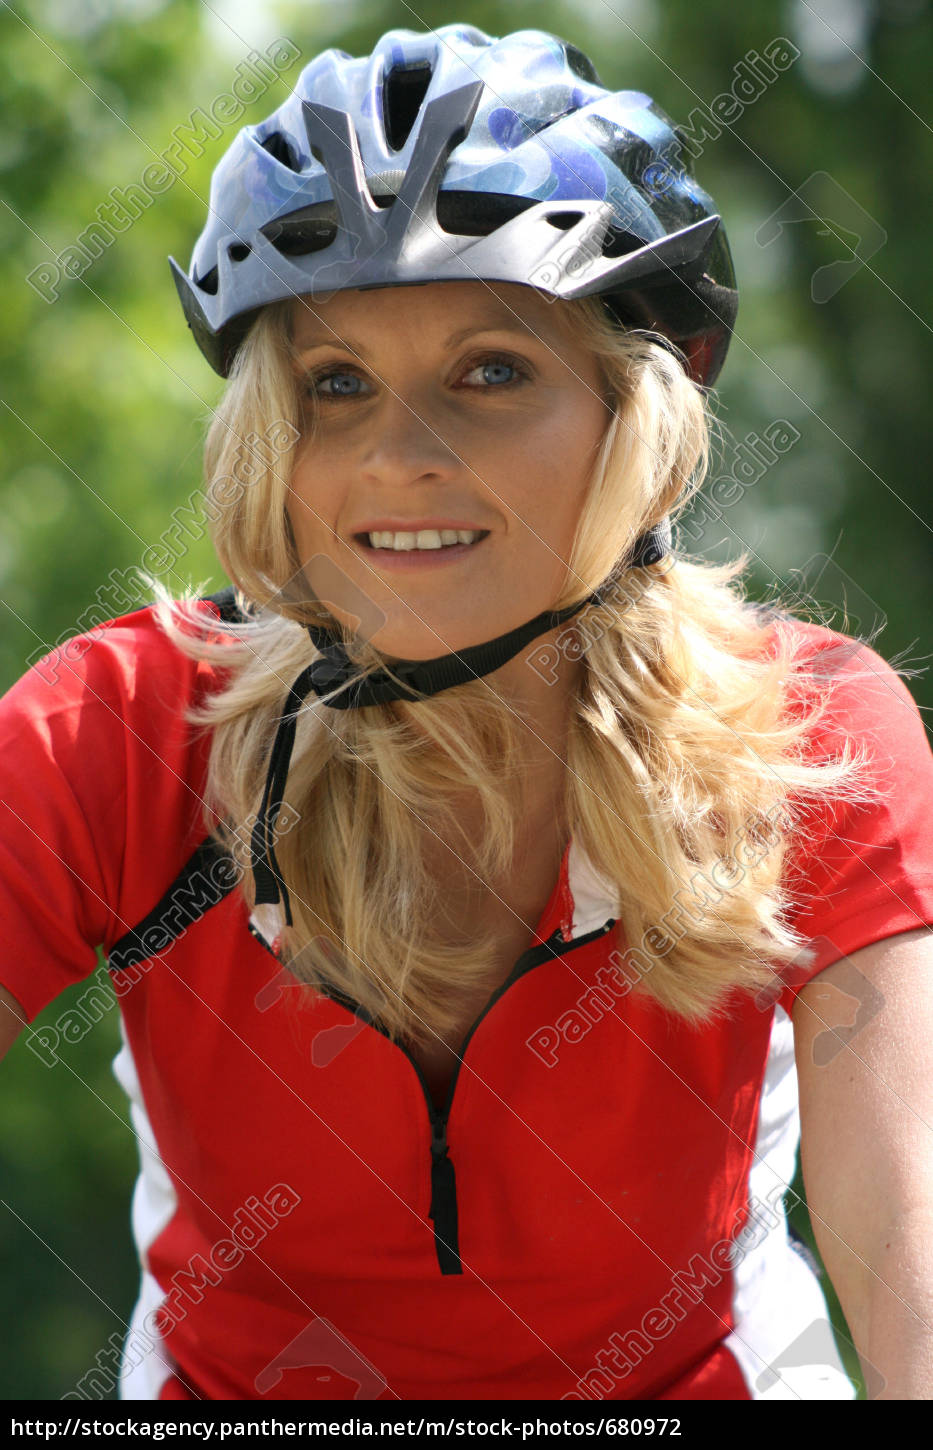 cycling, helmet - 680972